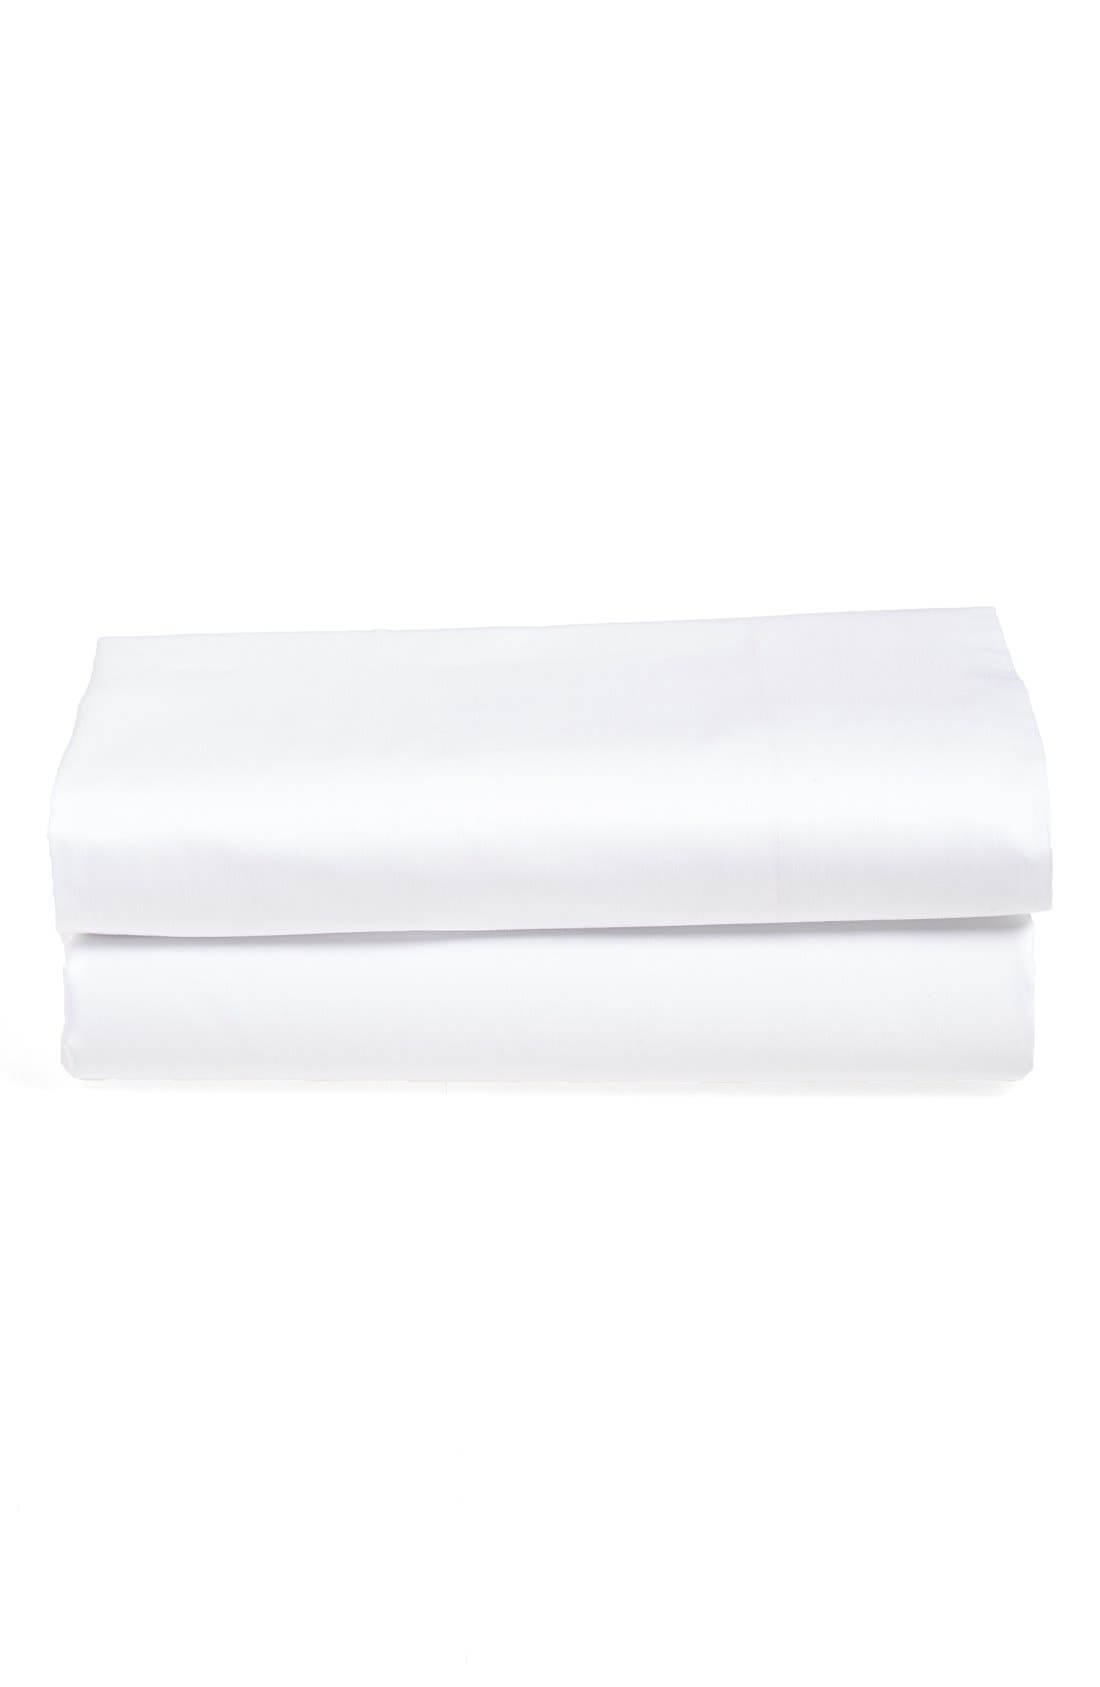 'Ultra Luxe' 600 Thread Count Flat Sheet,                         Main,                         color, White